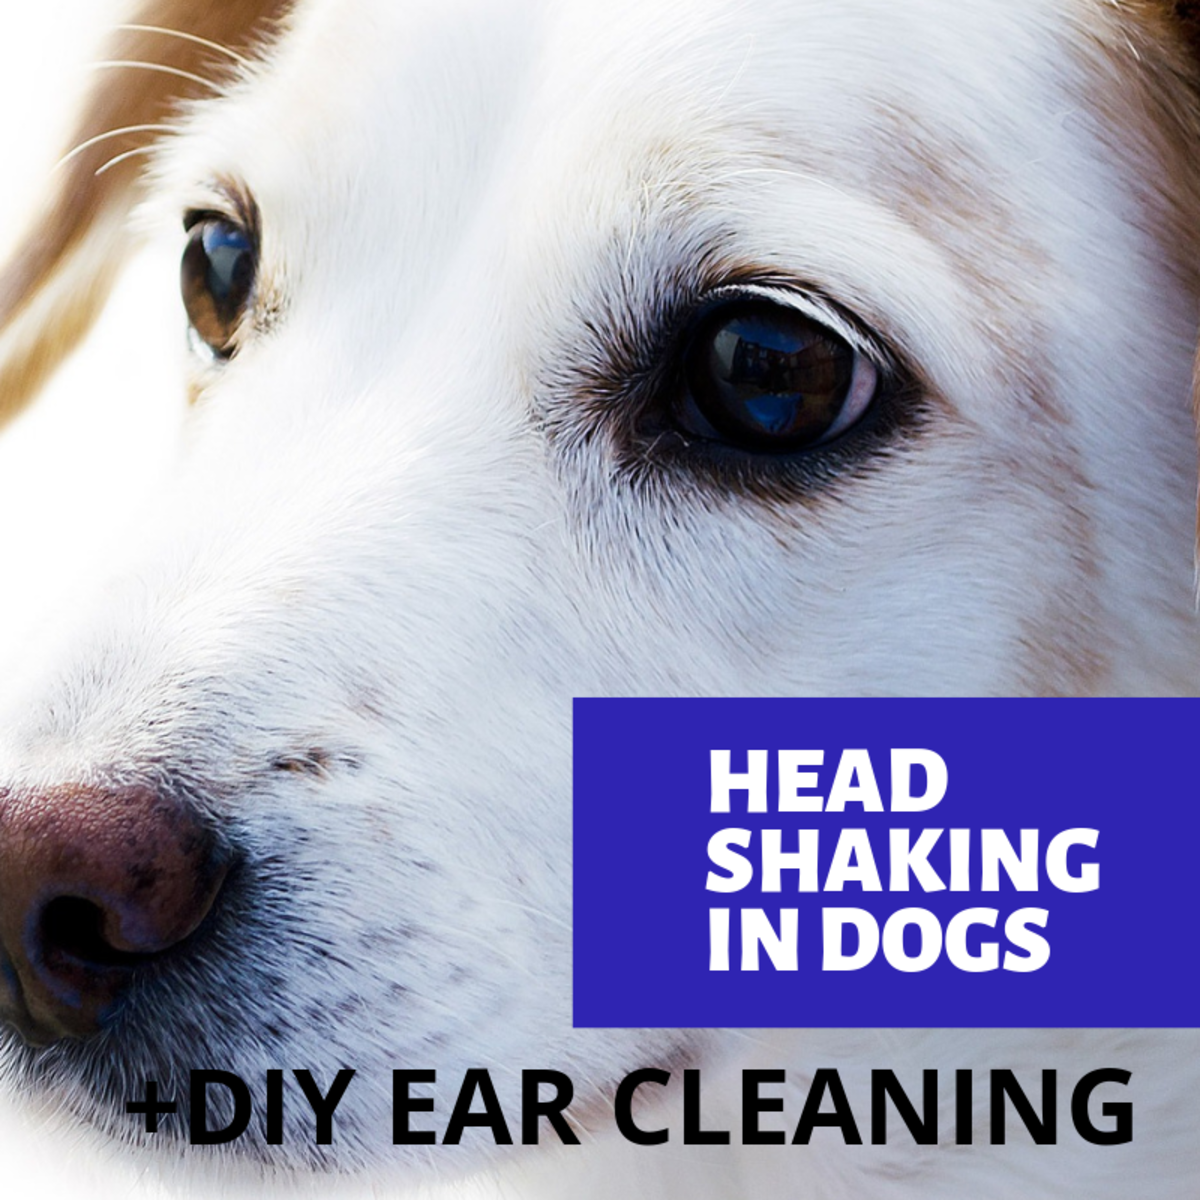 Causes and Solutions for Dog Head-Shaking